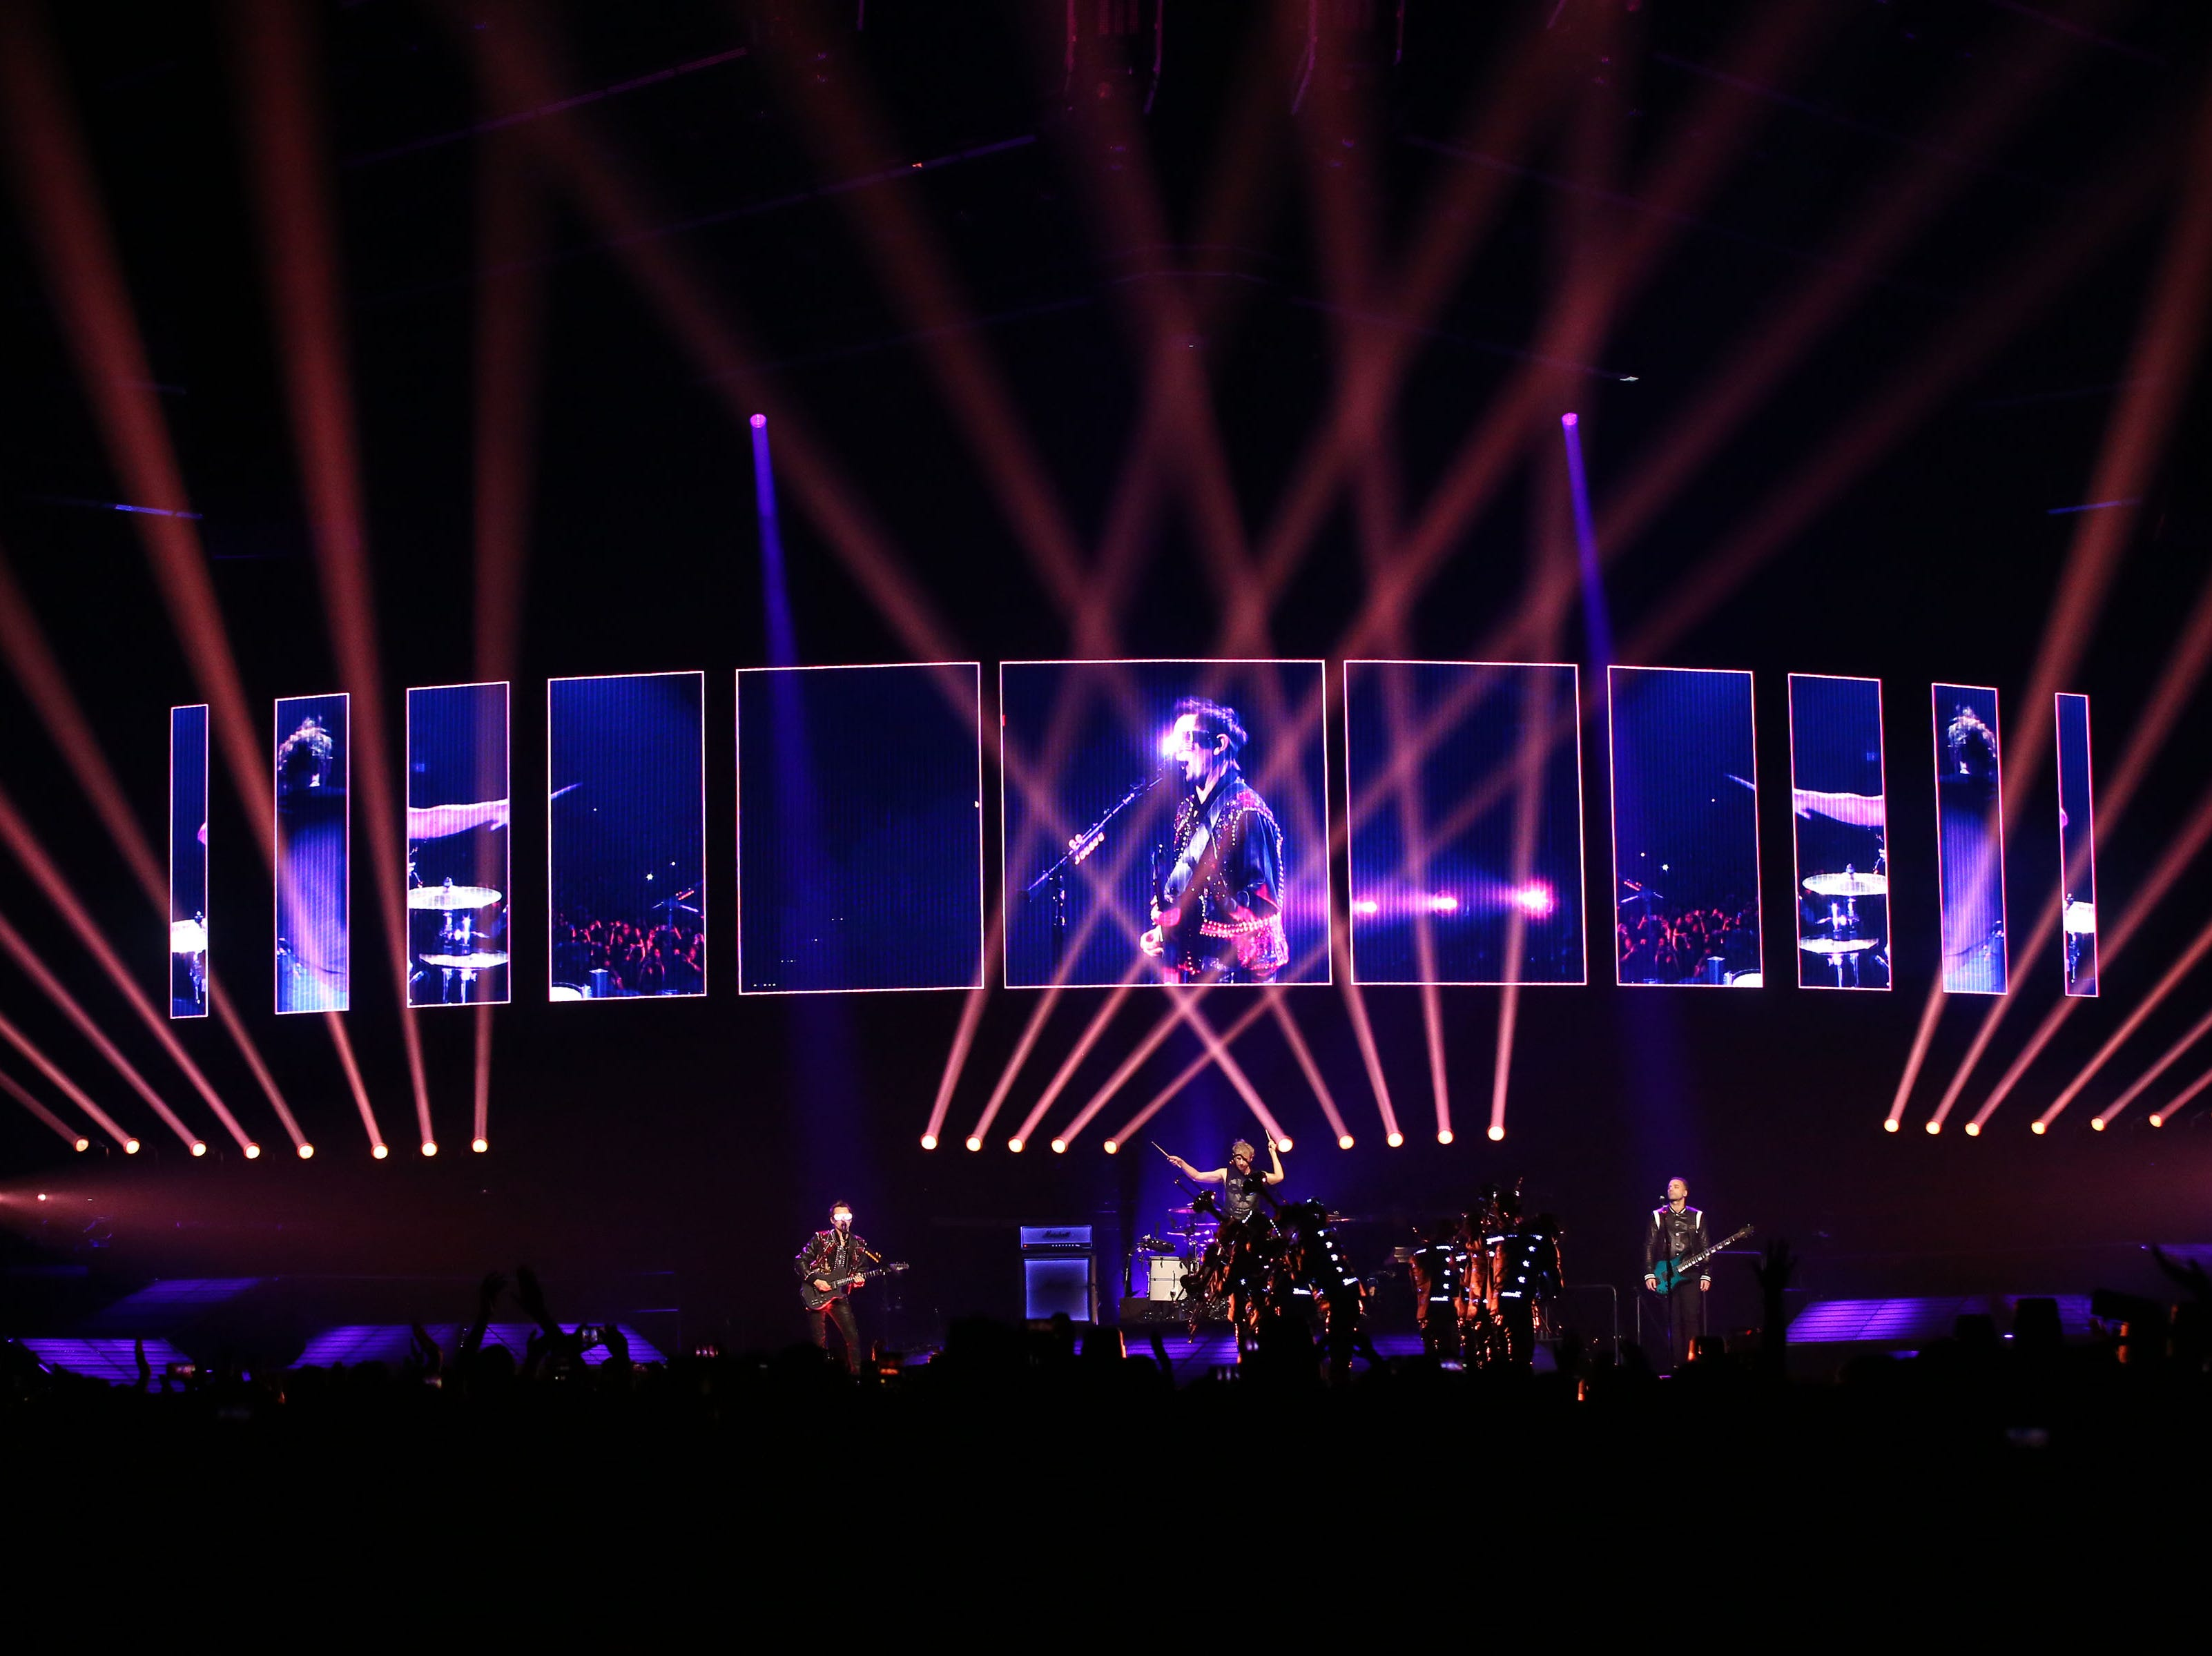 Muse performs during their Simulation Theory World Tour on Feb. 26, 2019 at Talking Stick Resort Arena in Phoenix, Ariz.